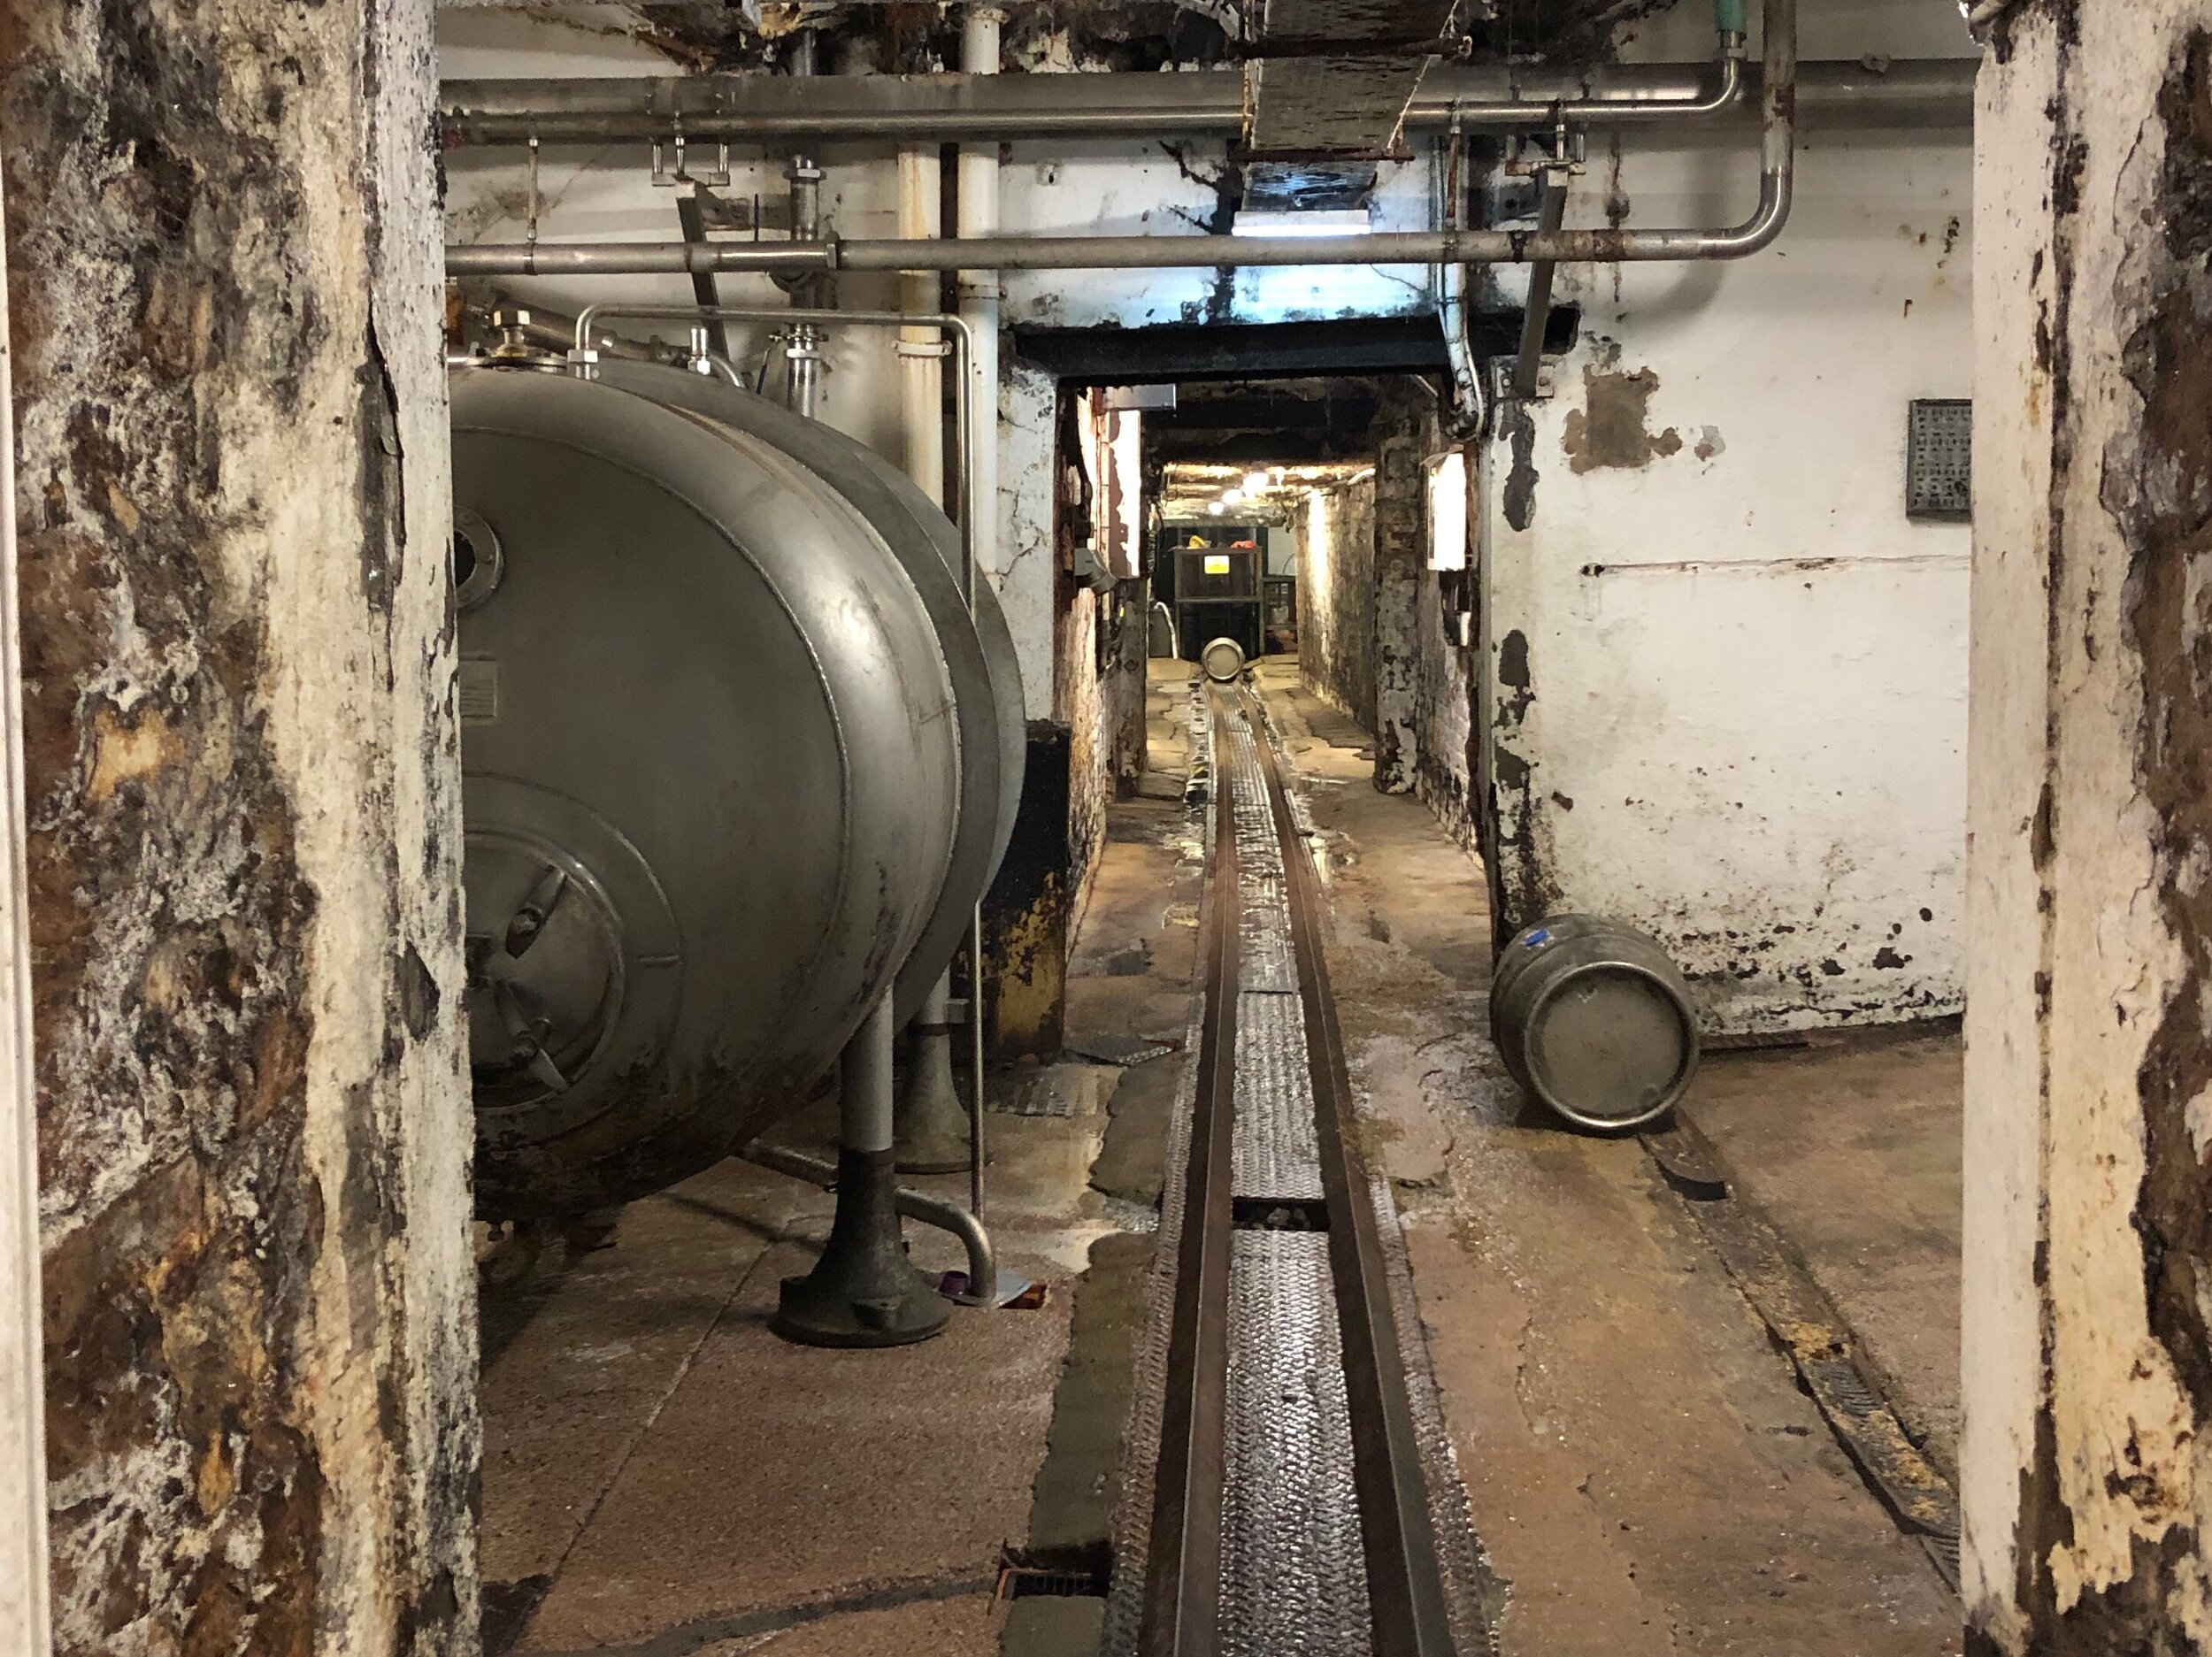 Rails for rolling casks. They go right under the office, where the rumbling is  very  loud. It's like a gravel truck driving by.